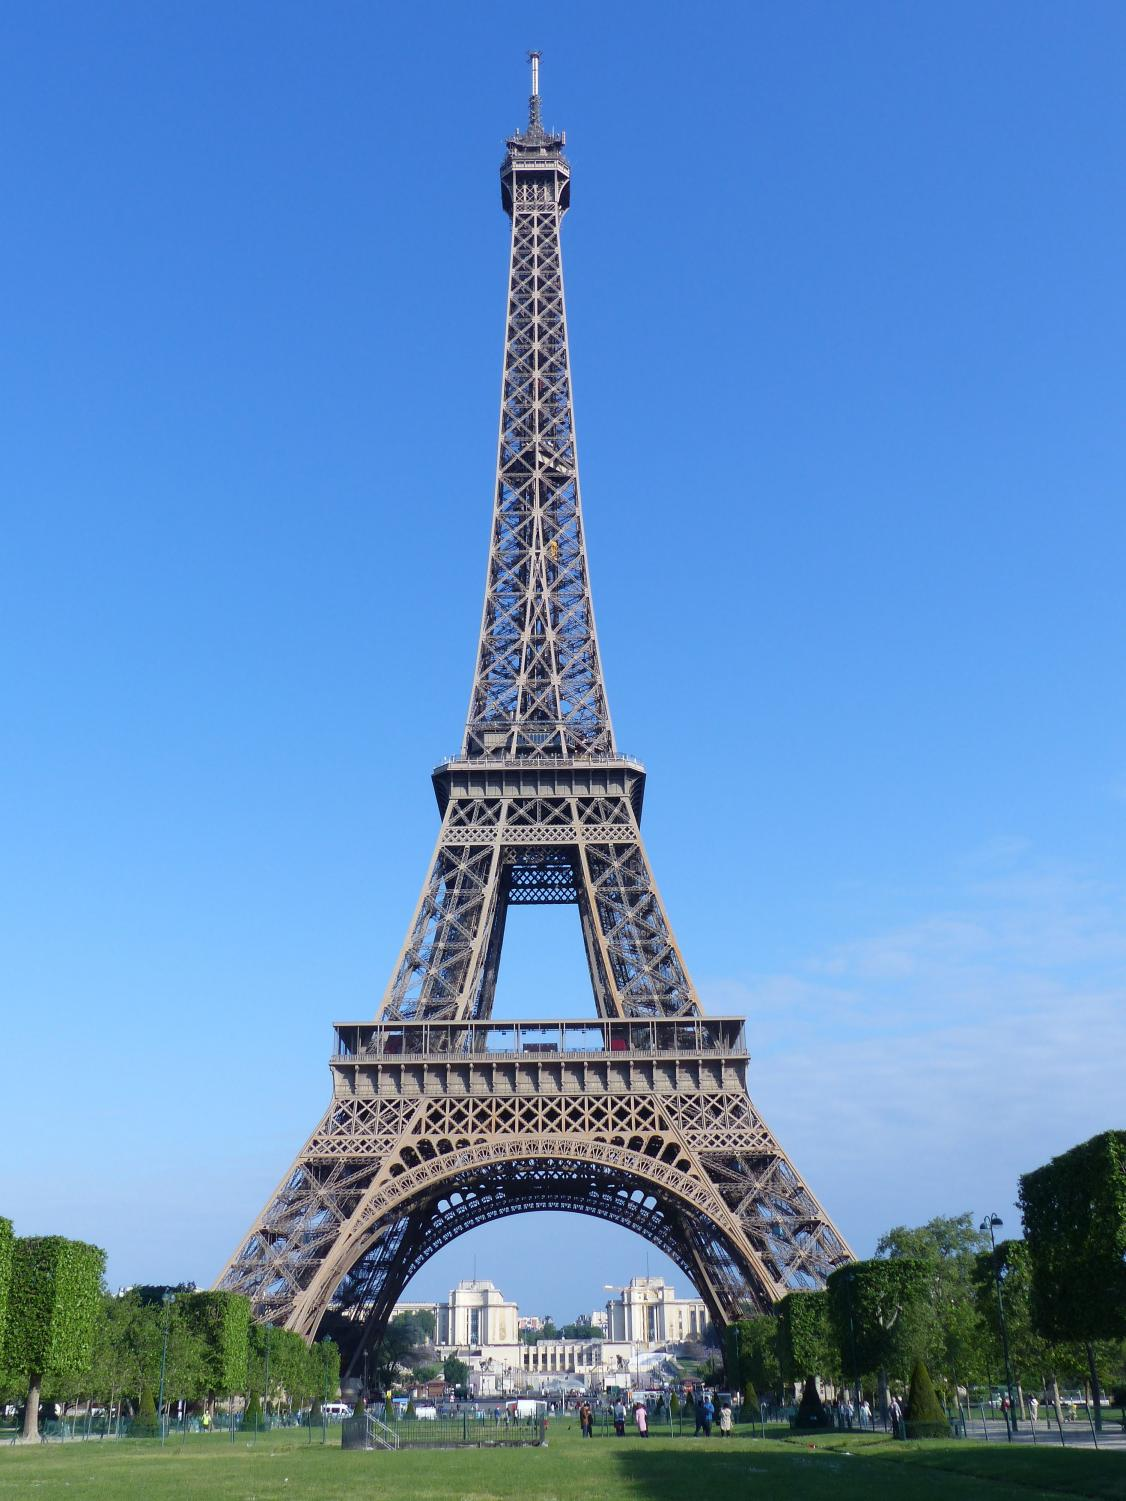 Photo via https://commons.m.wikimedia.org/wiki/File:The_Eiffel_Tower_seen_from_Champ_de_Mars.jpg Under the Creative Commons License